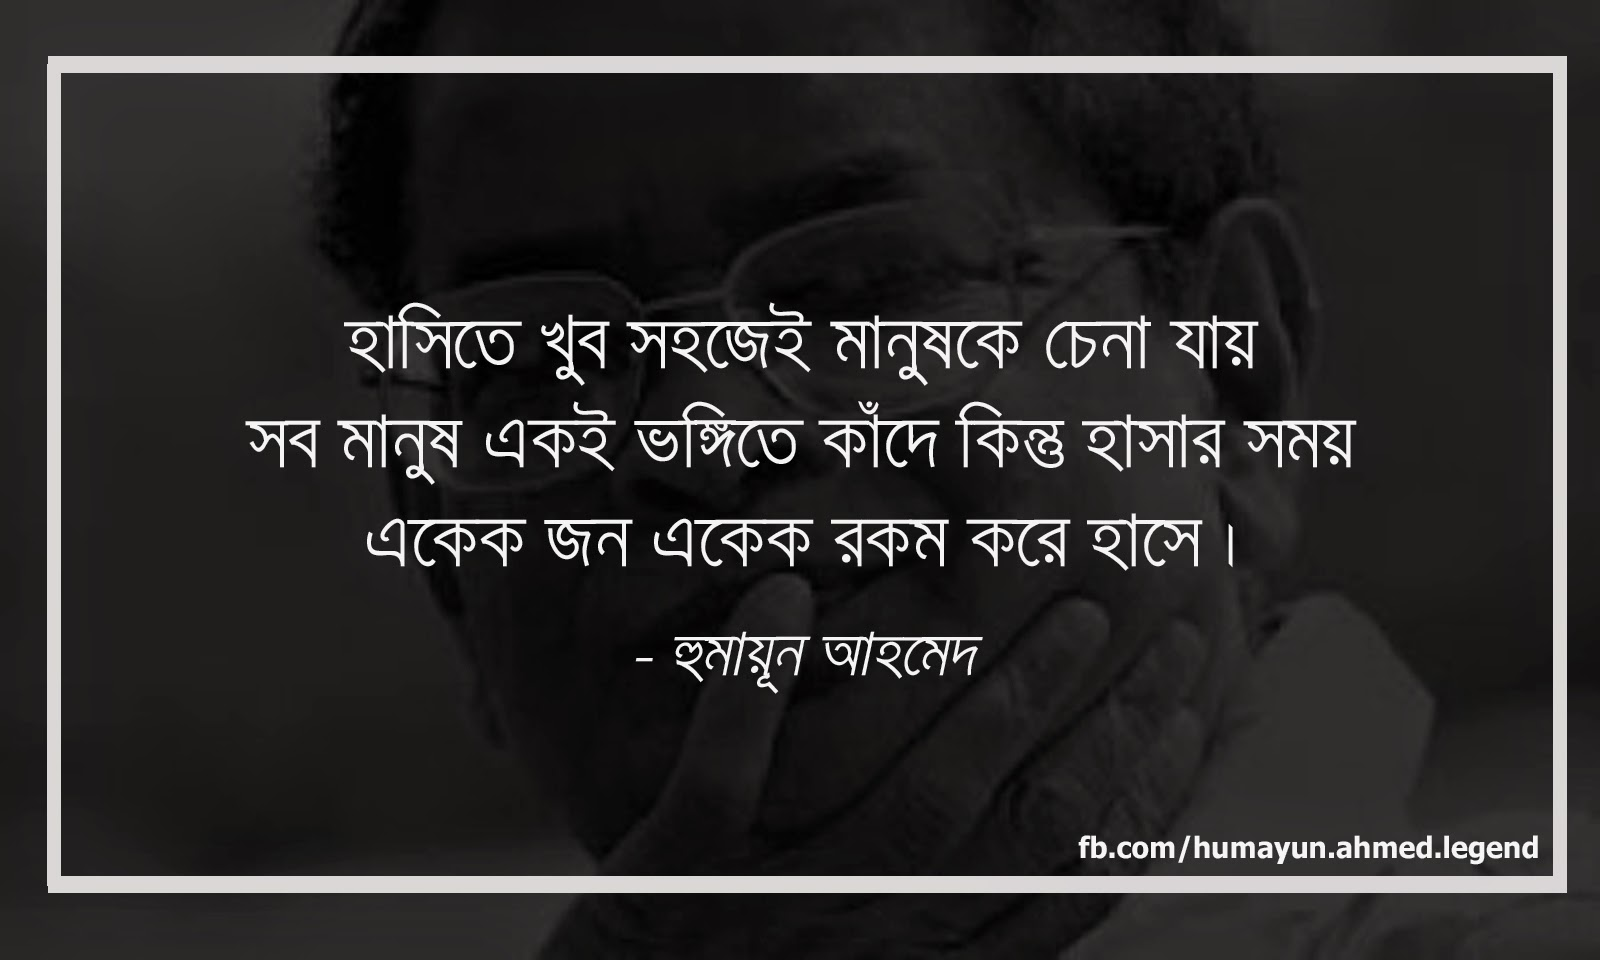 Heroes Saying: Humayun Ahmed's bengali quotes about smile